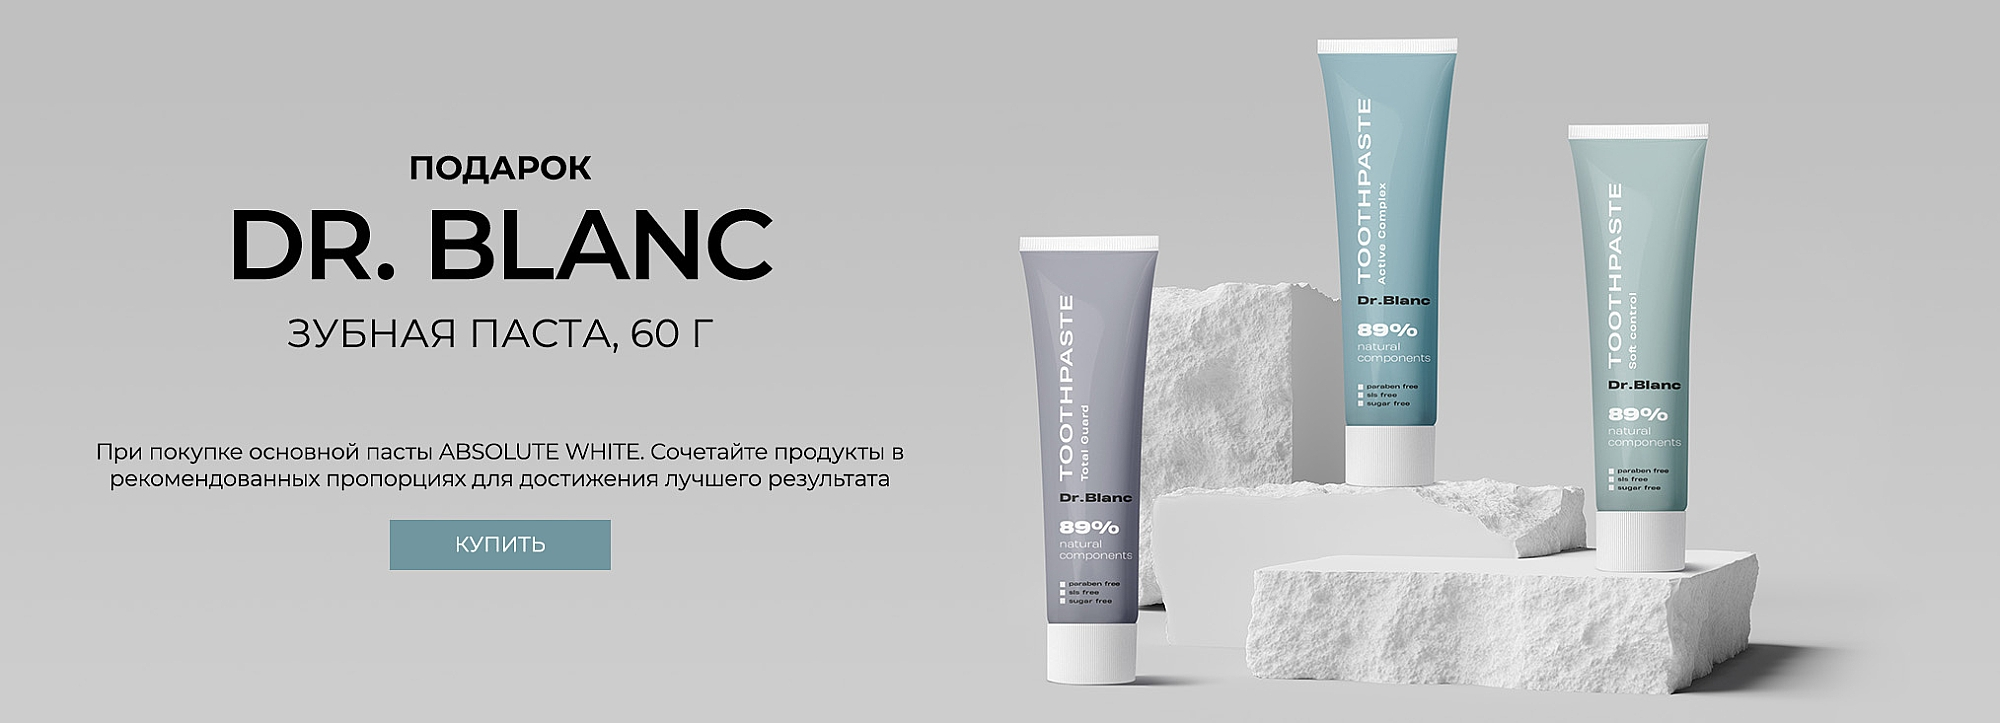 Dr. Blanc toothpaste321073